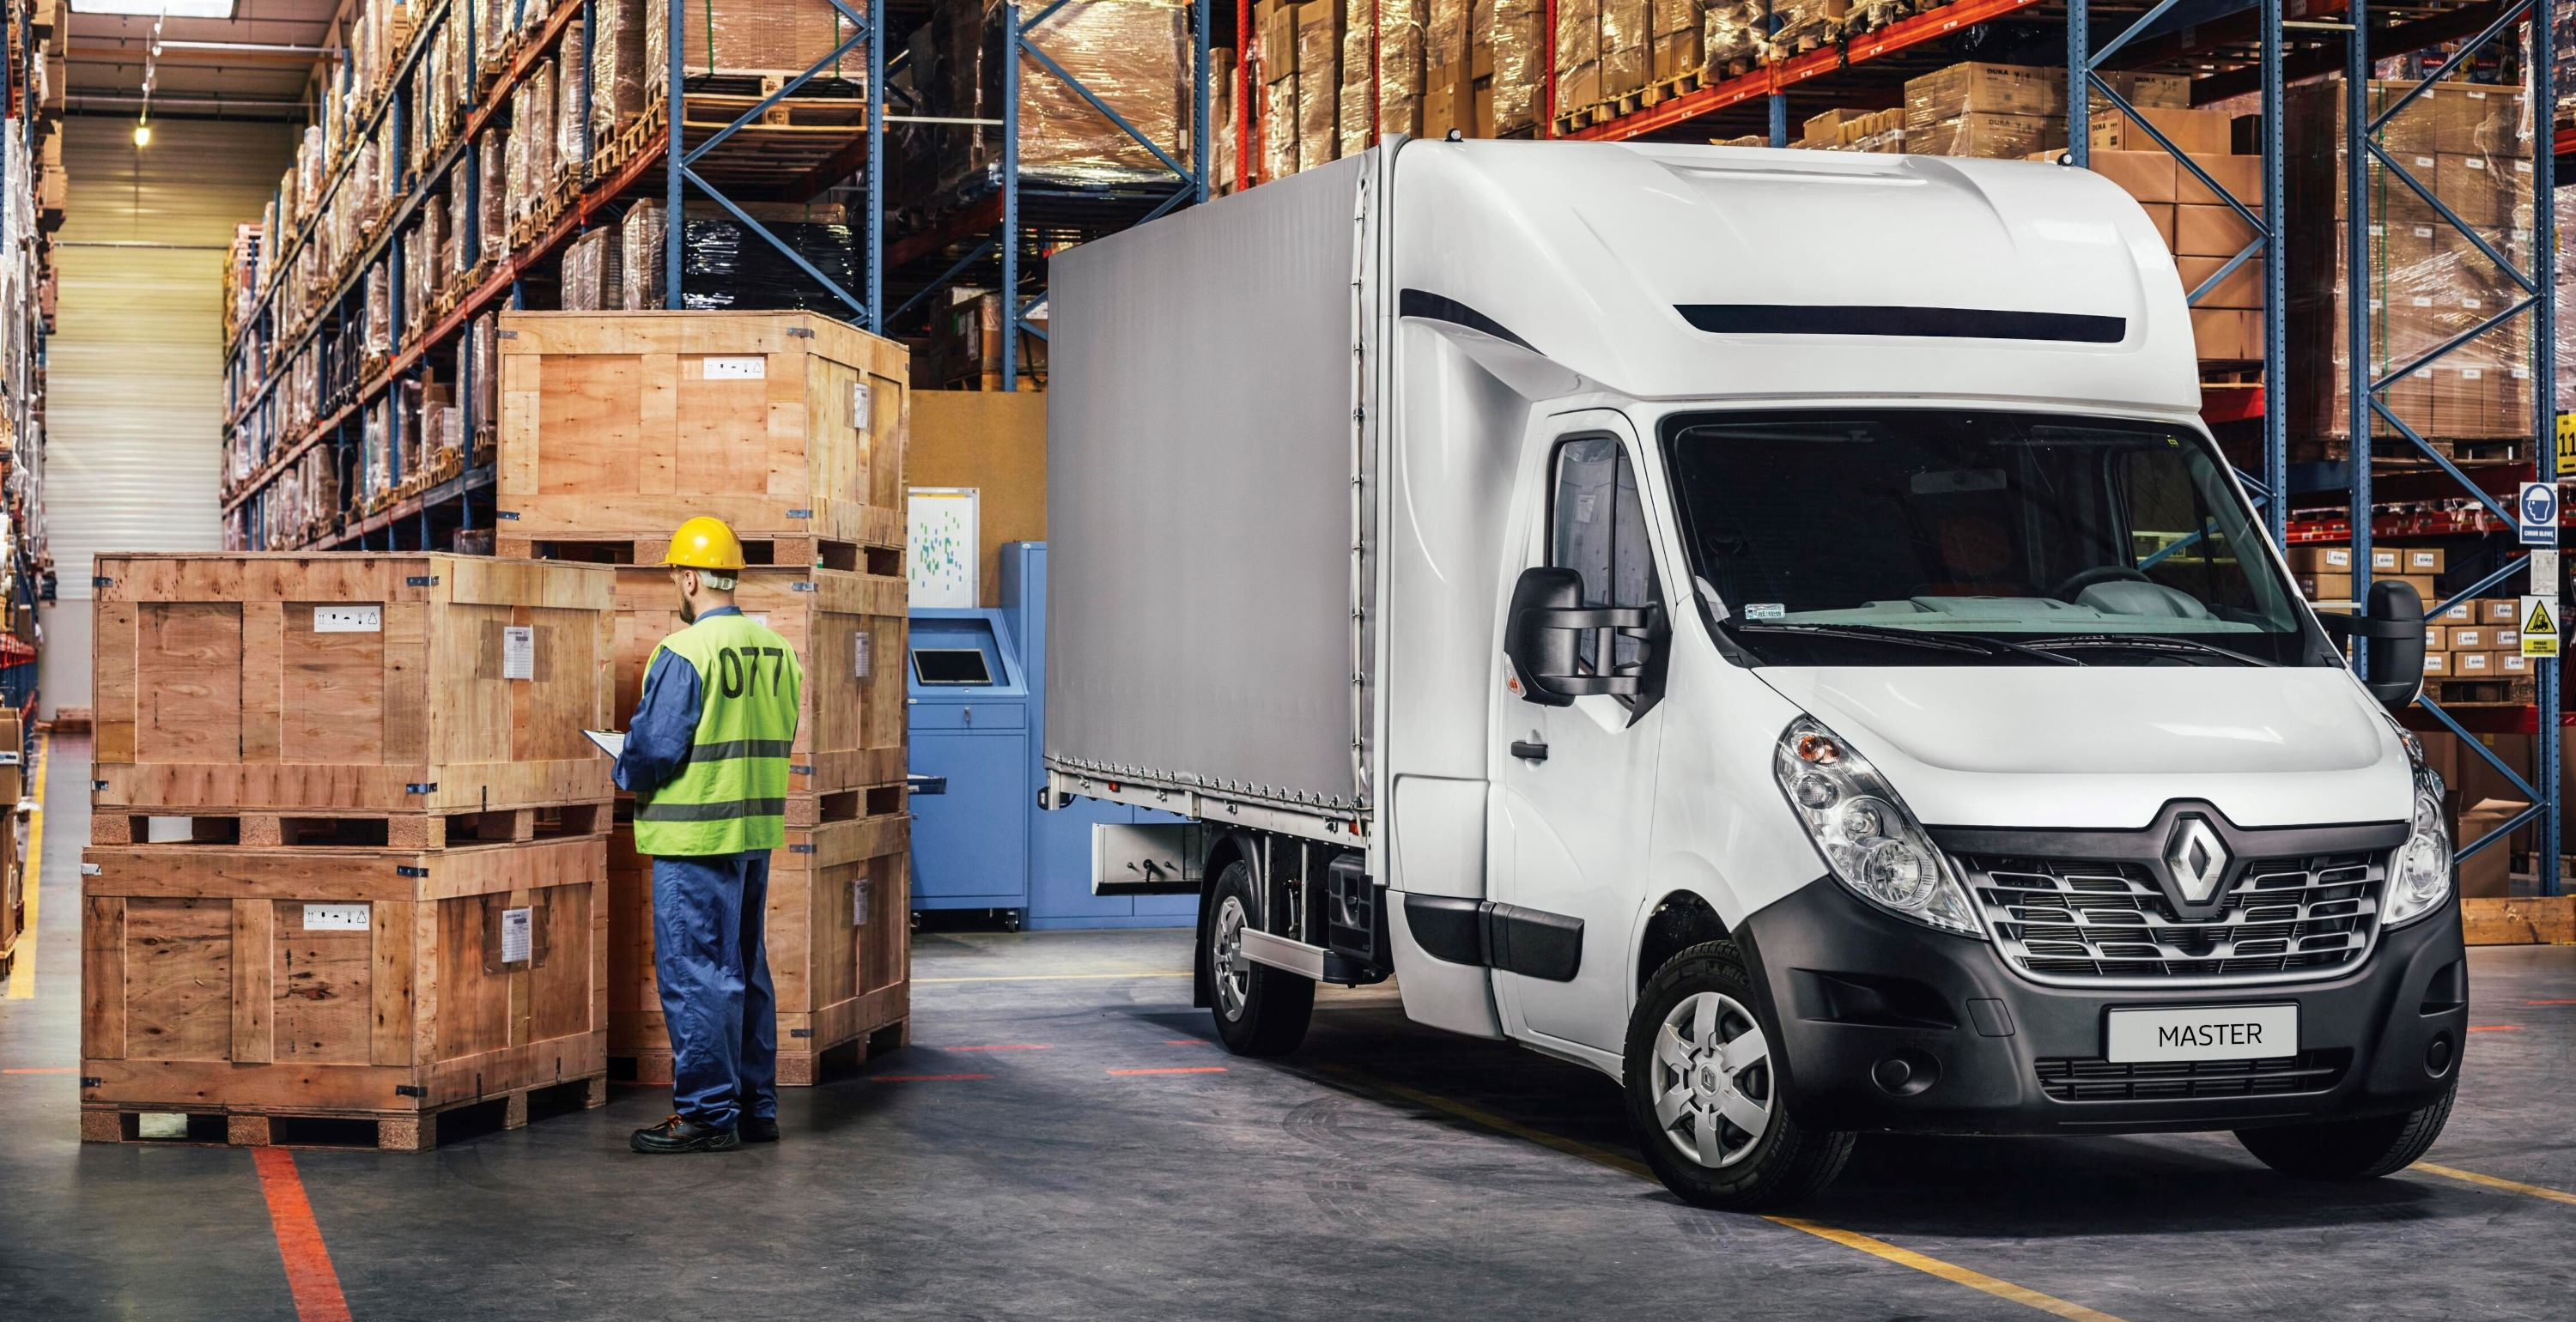 2020 - 40 years of Renault MASTER(1)